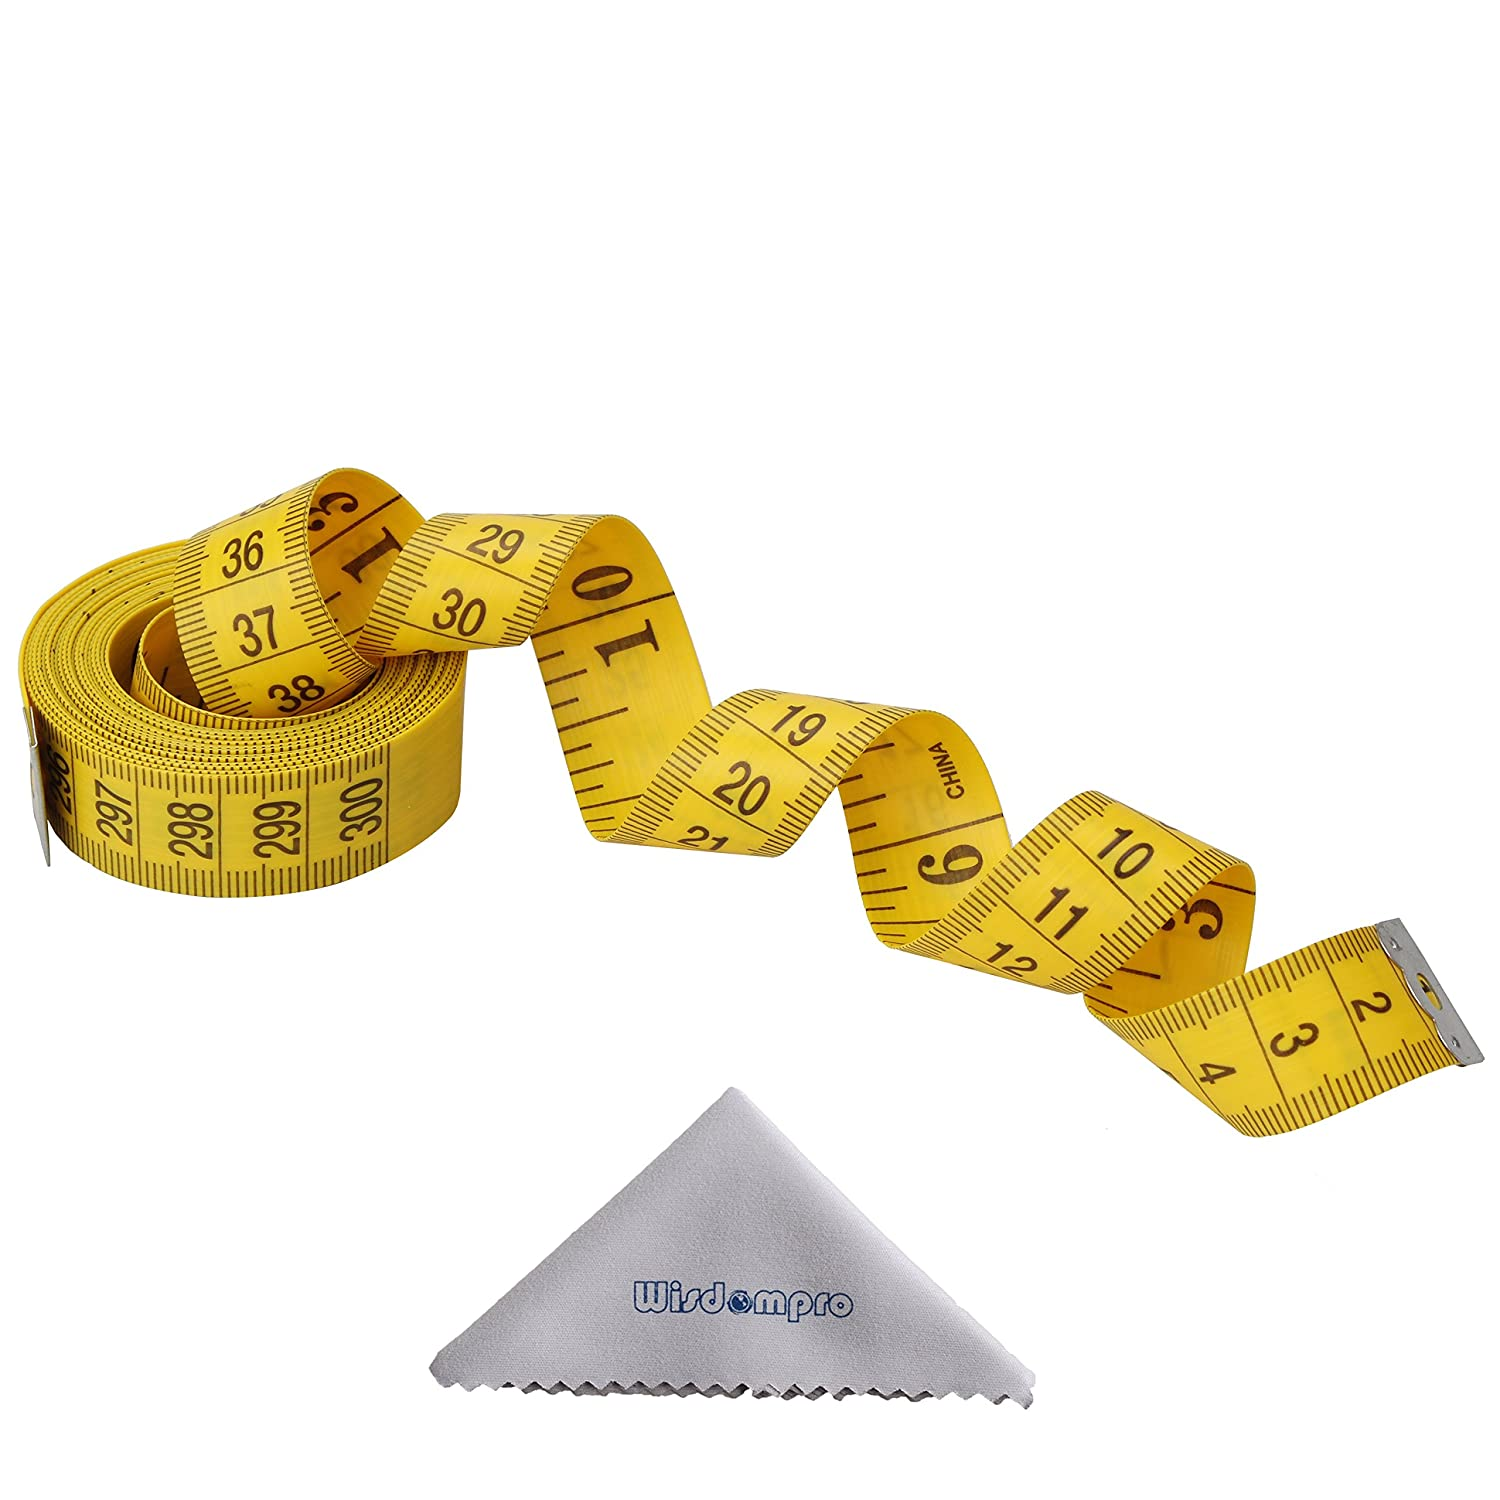 Wisdompro 2 Packs 60-Inch//150cm Soft Tape Measure for Sewing Tailor Cloth - White Indexed in Metric /& Standard Units Body Measurement